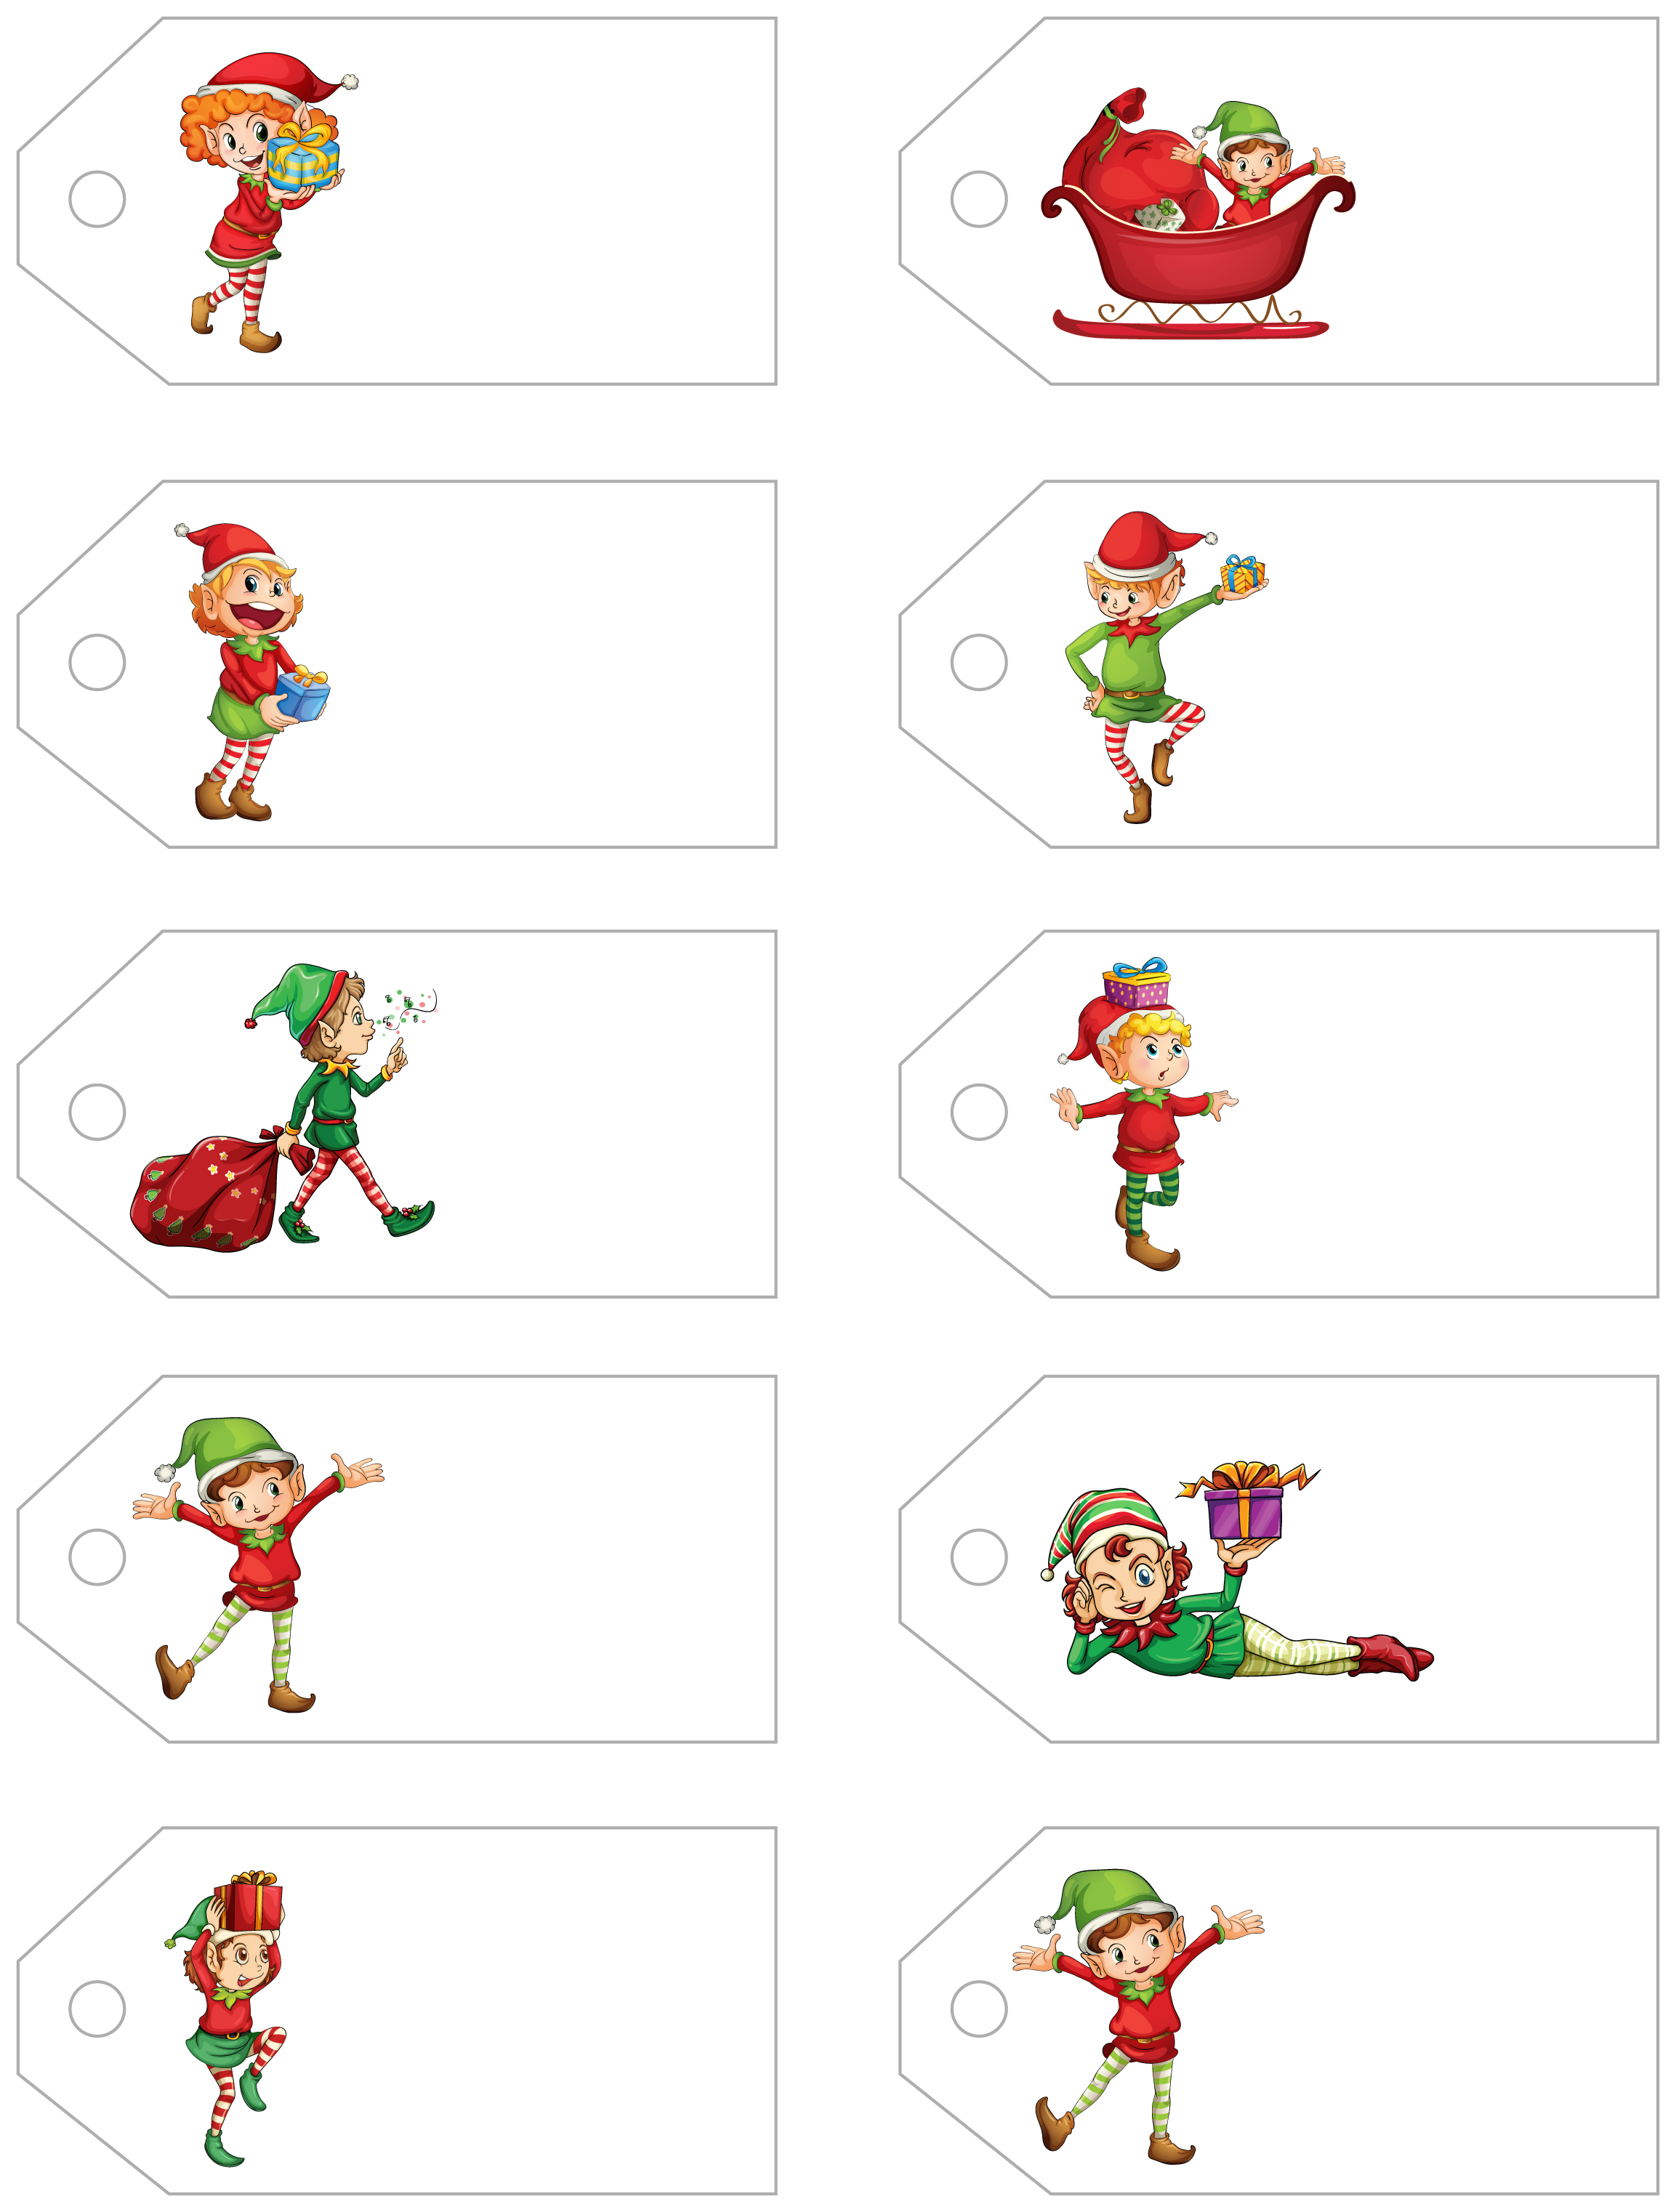 Santa's Little Gift To You! Free Printable Gift Tags And Labels - Free Printable Gift Tags